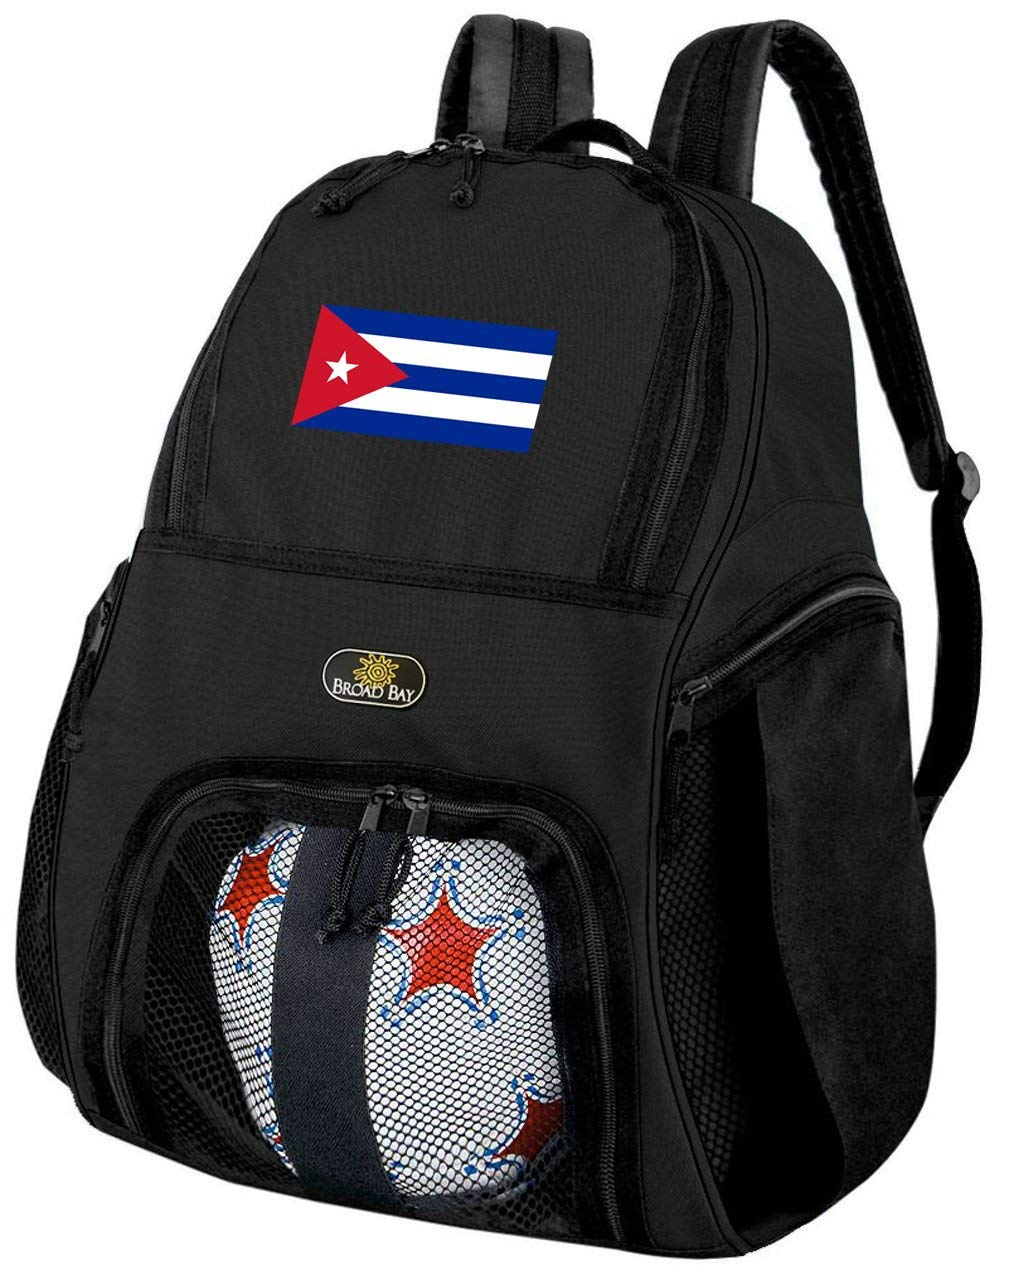 Broad Bay Cuba Soccer Backpack or Cuban Flag Volleyball Bag